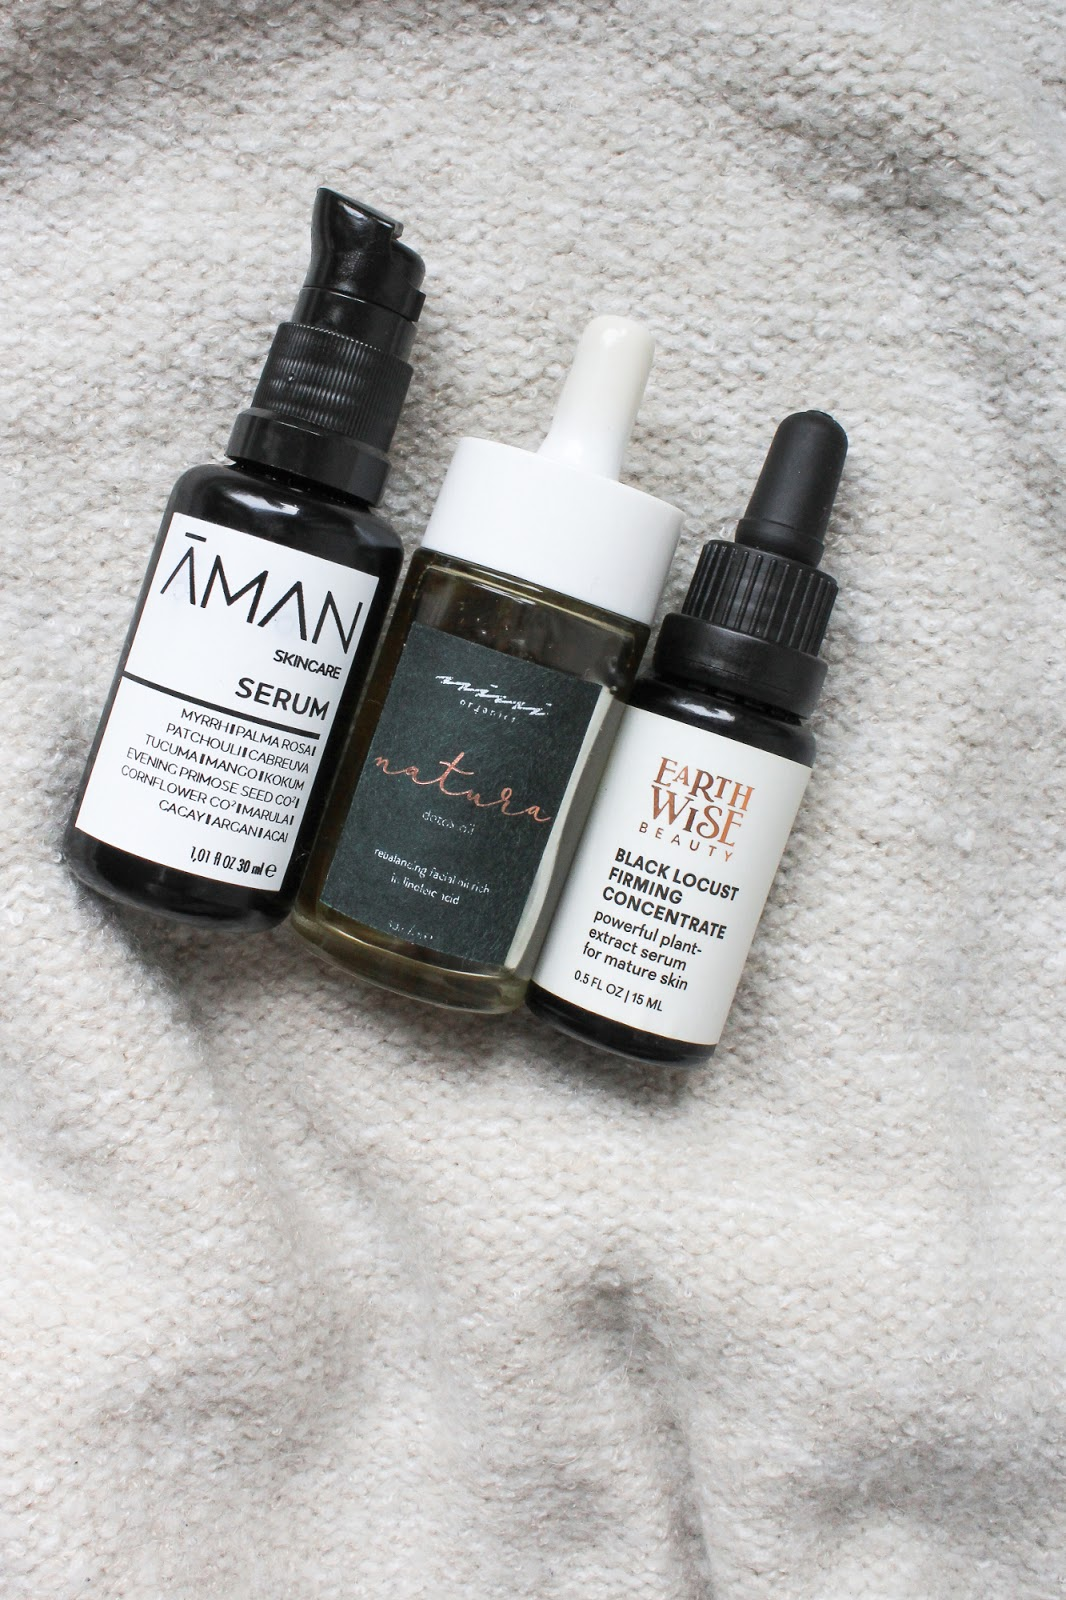 Organic, natural, cruelty free facial oils. Earthwise Beauty Black Locust Firming Concentrate, Emanufaktur Aman Skincare Serum, Nini Organics Natura Detox Oil